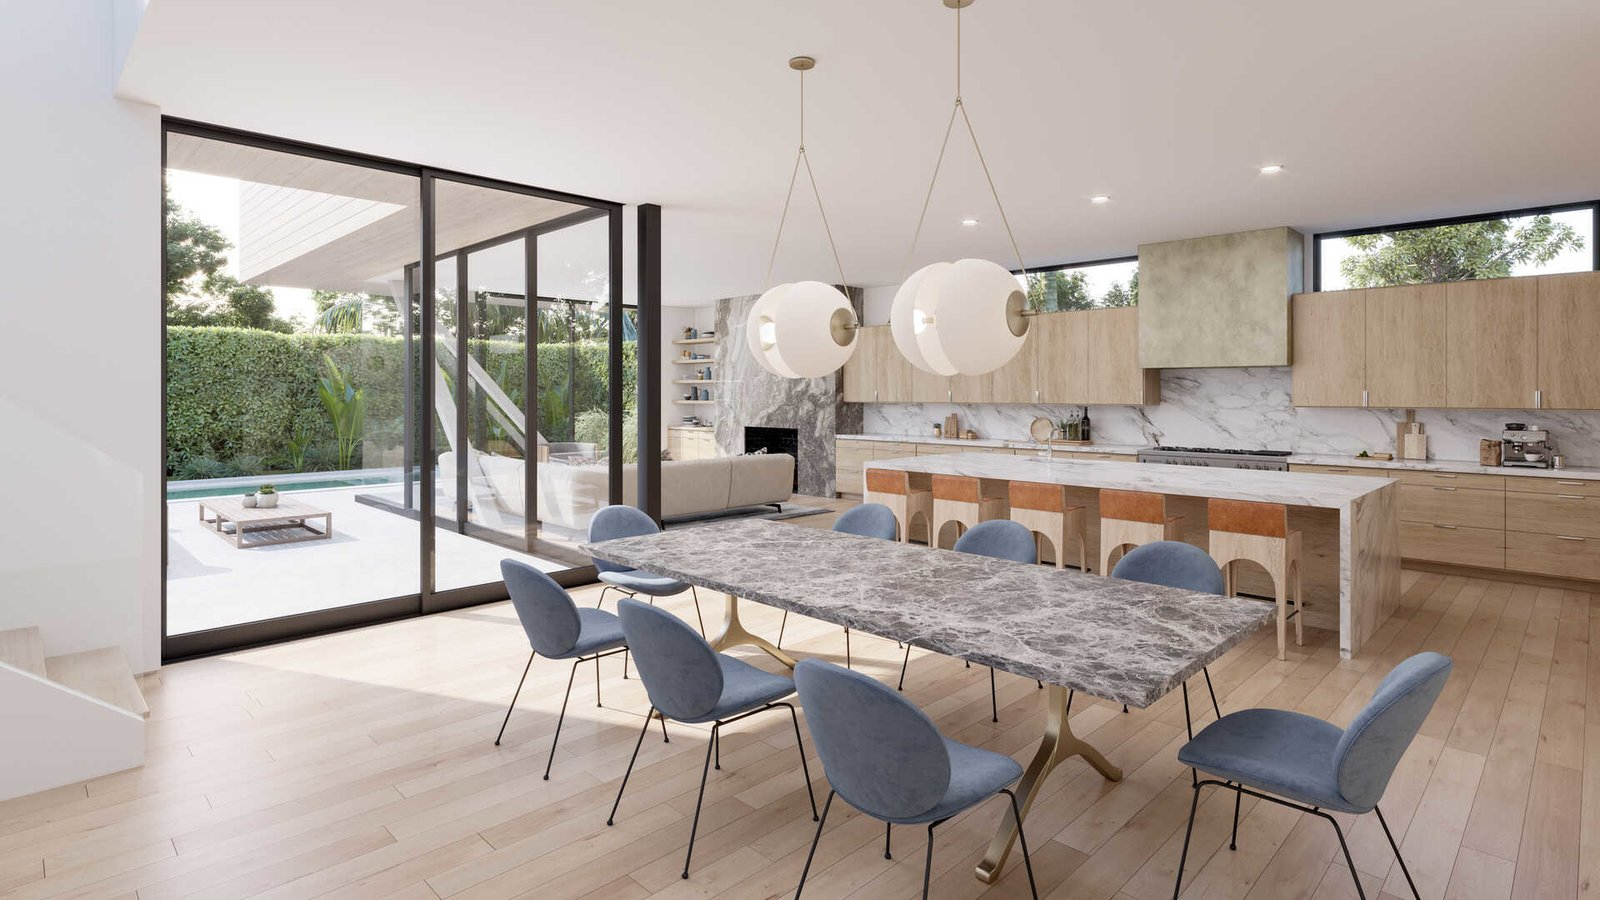 Kitchen, Pendant Lighting, Light Hardwood Floor, Stone Counter, Recessed Lighting, Marble Counter, Stone Slab Backsplashe, and Wood Cabinet  A Newly-Built Modern Hilltop Home in Mar Vista